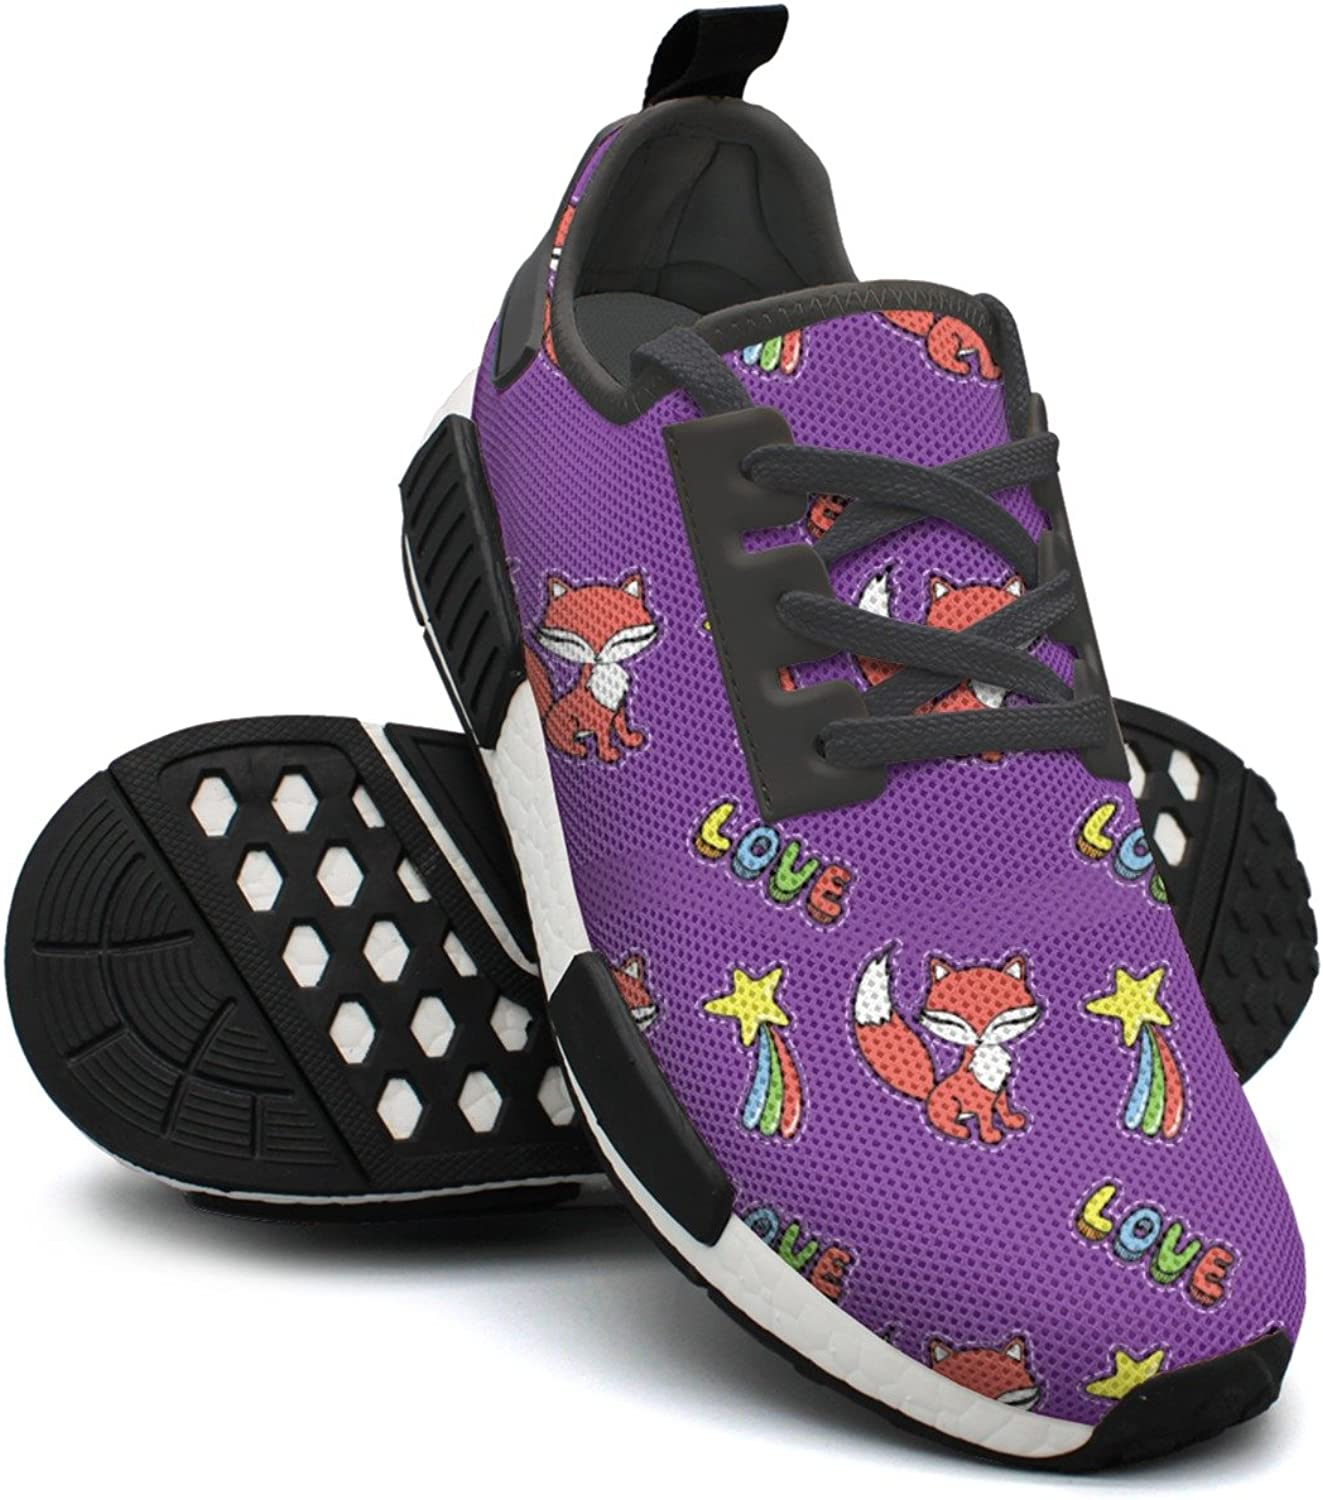 Kawaii Fox And Other Stickers Ladies Jogging shoes Nmd Workout Gym shoes